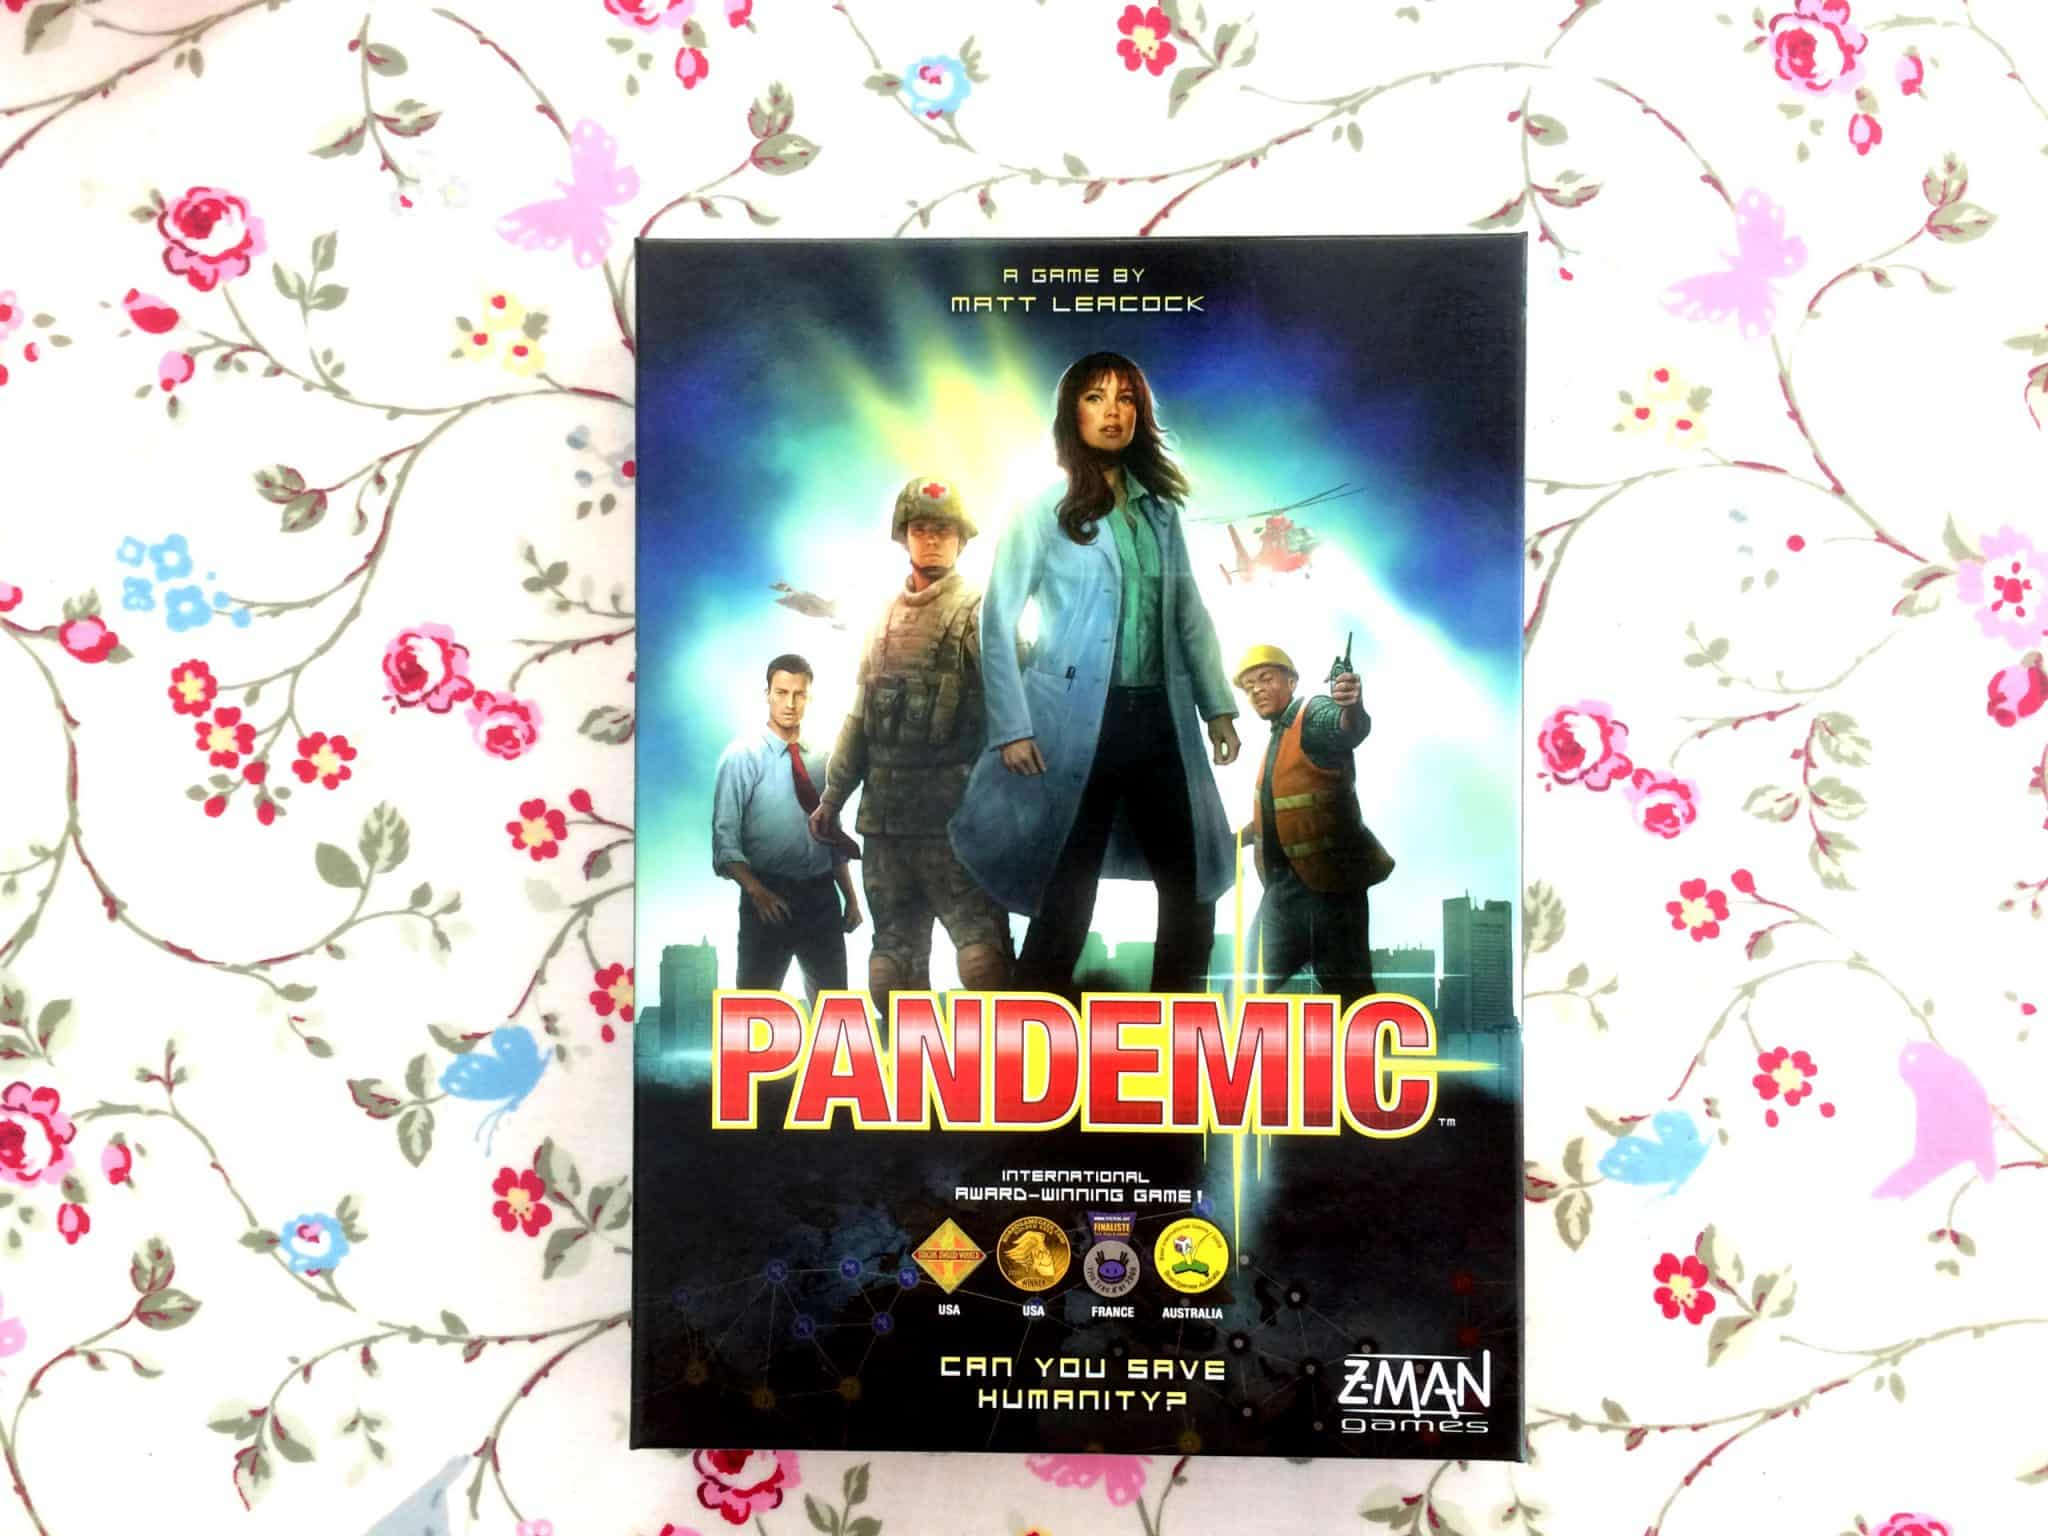 Pandemic unboxing cover